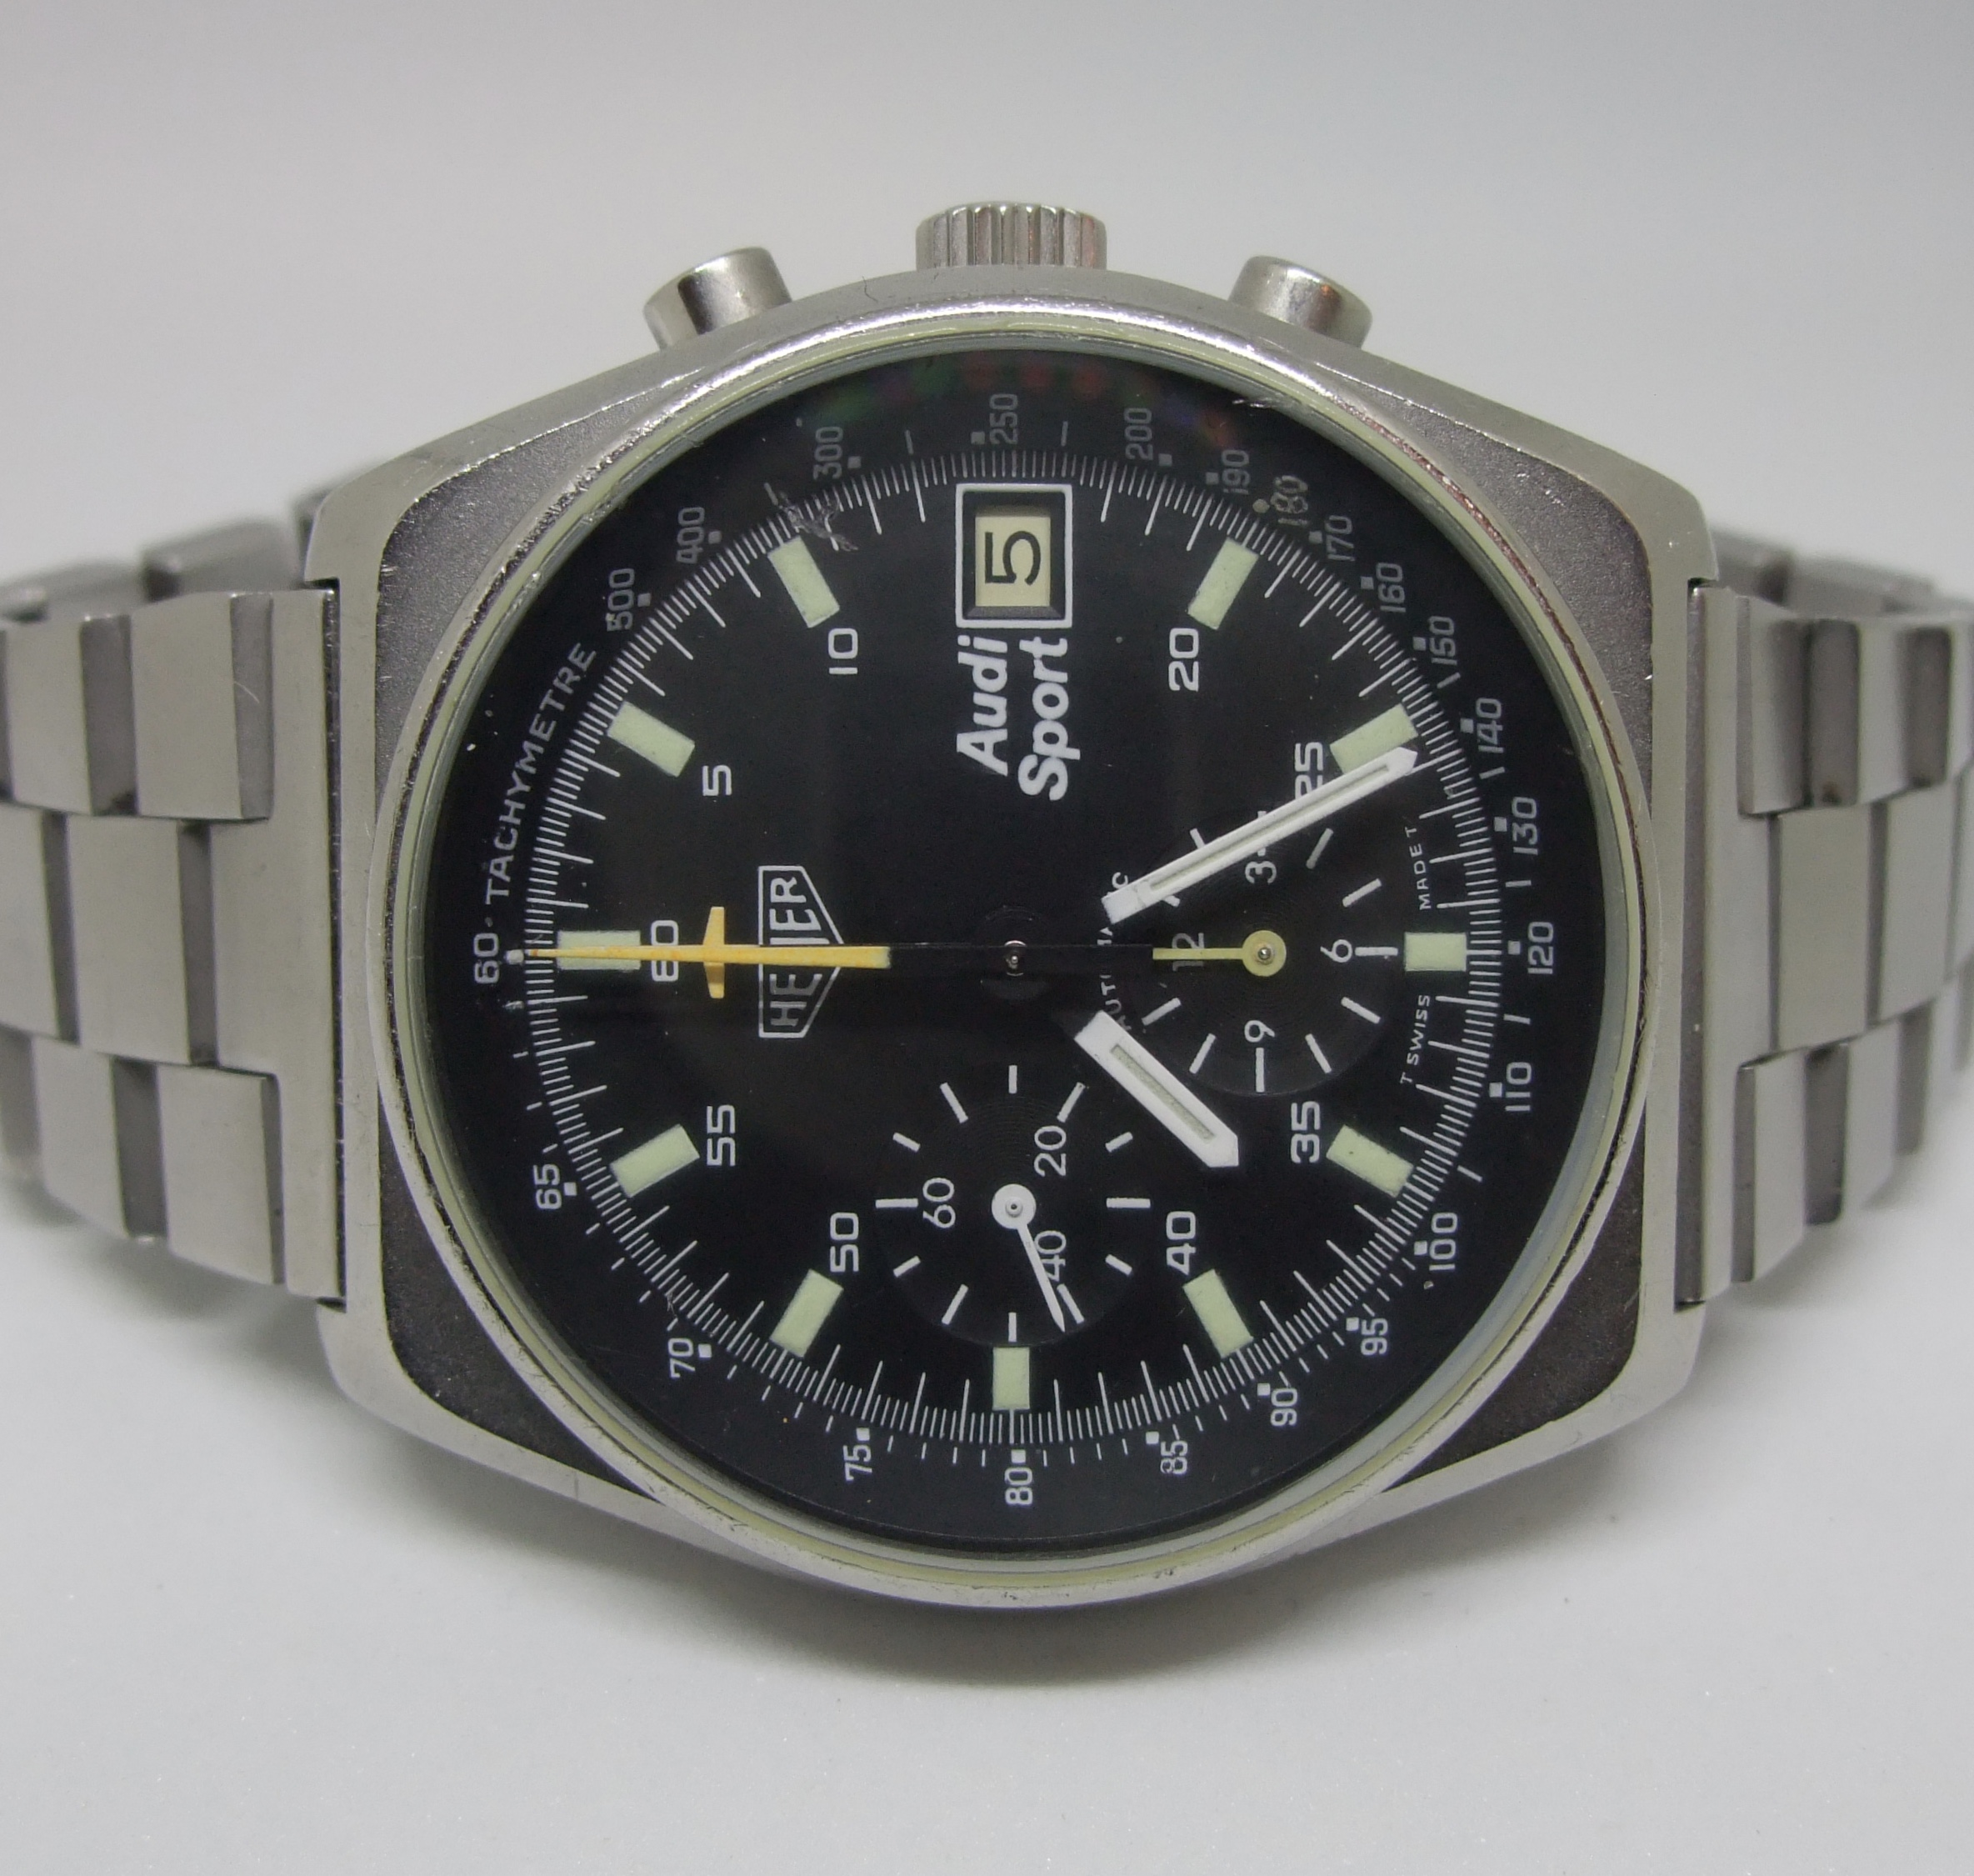 pilots watches champion titanium flightstore watch for pilot gifts aviation bravo aviators and garmin zoom